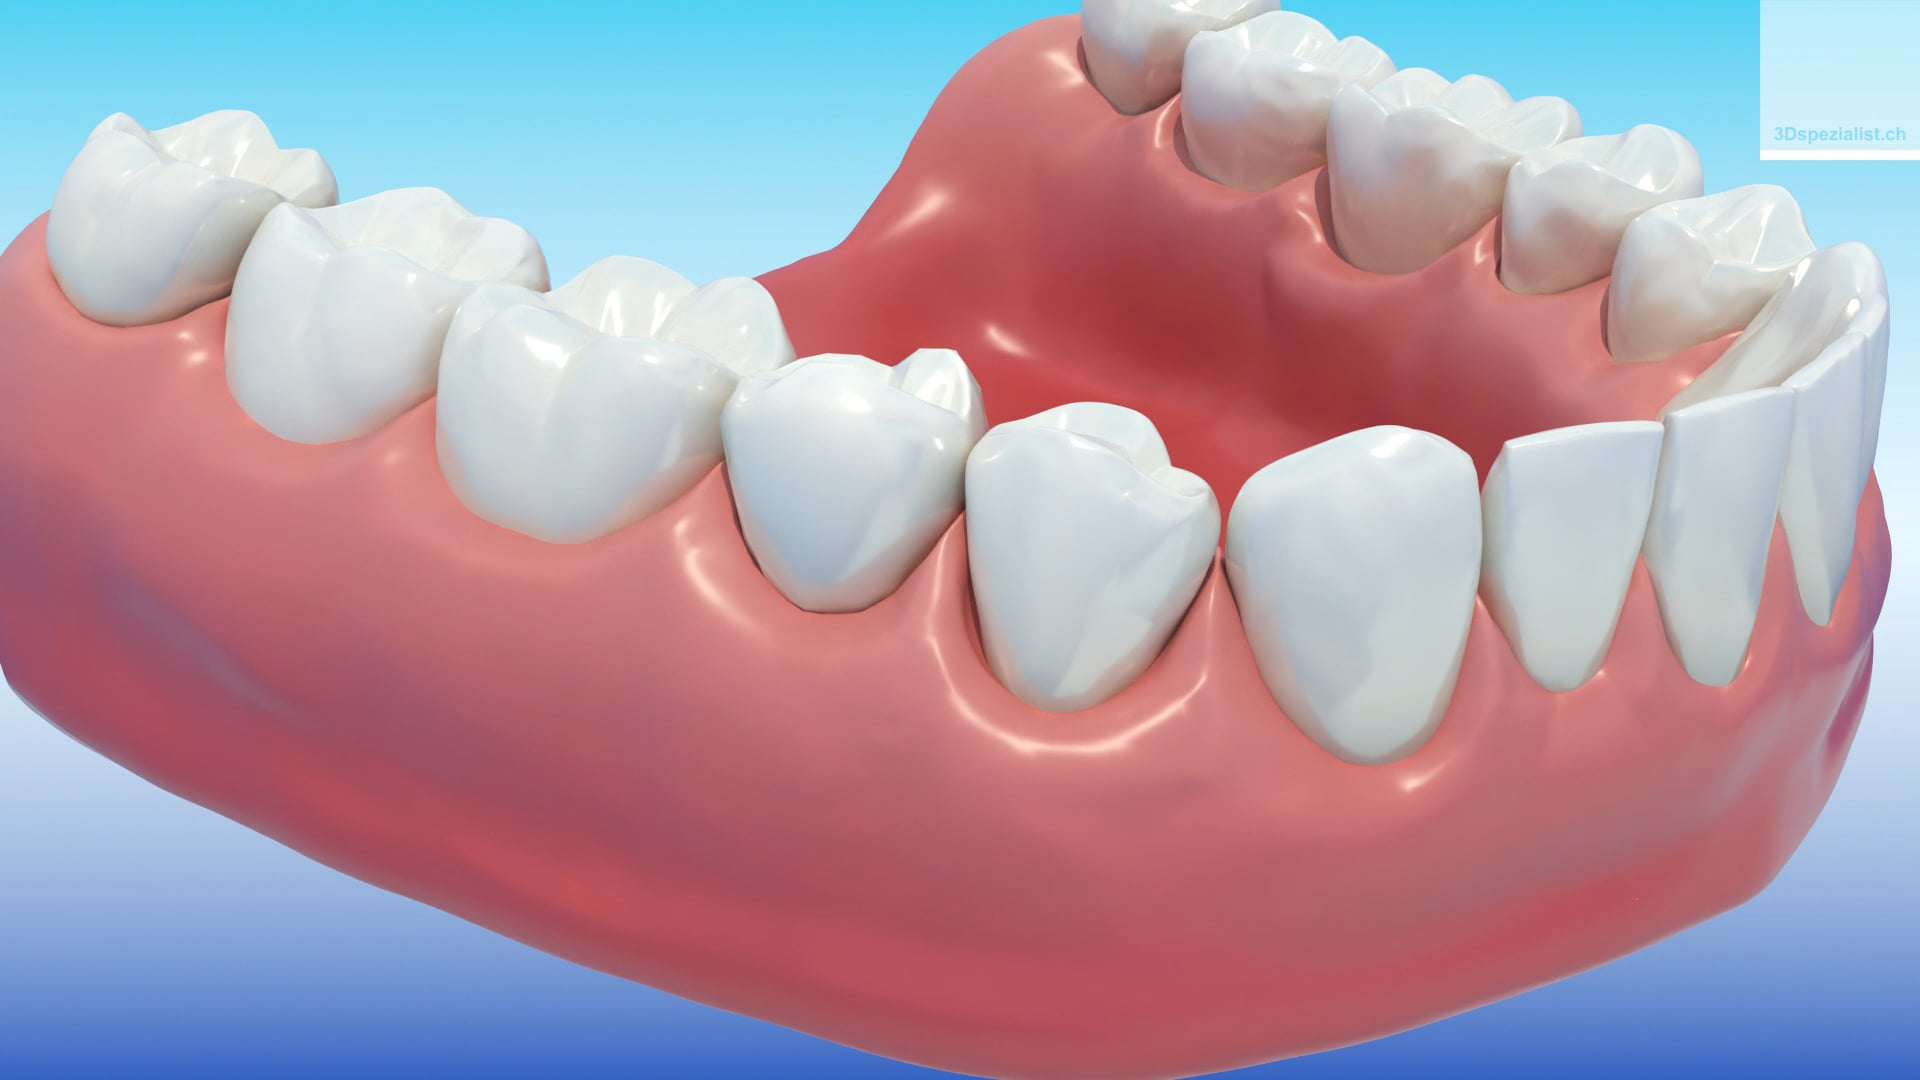 Post-Extraction Dental Implant